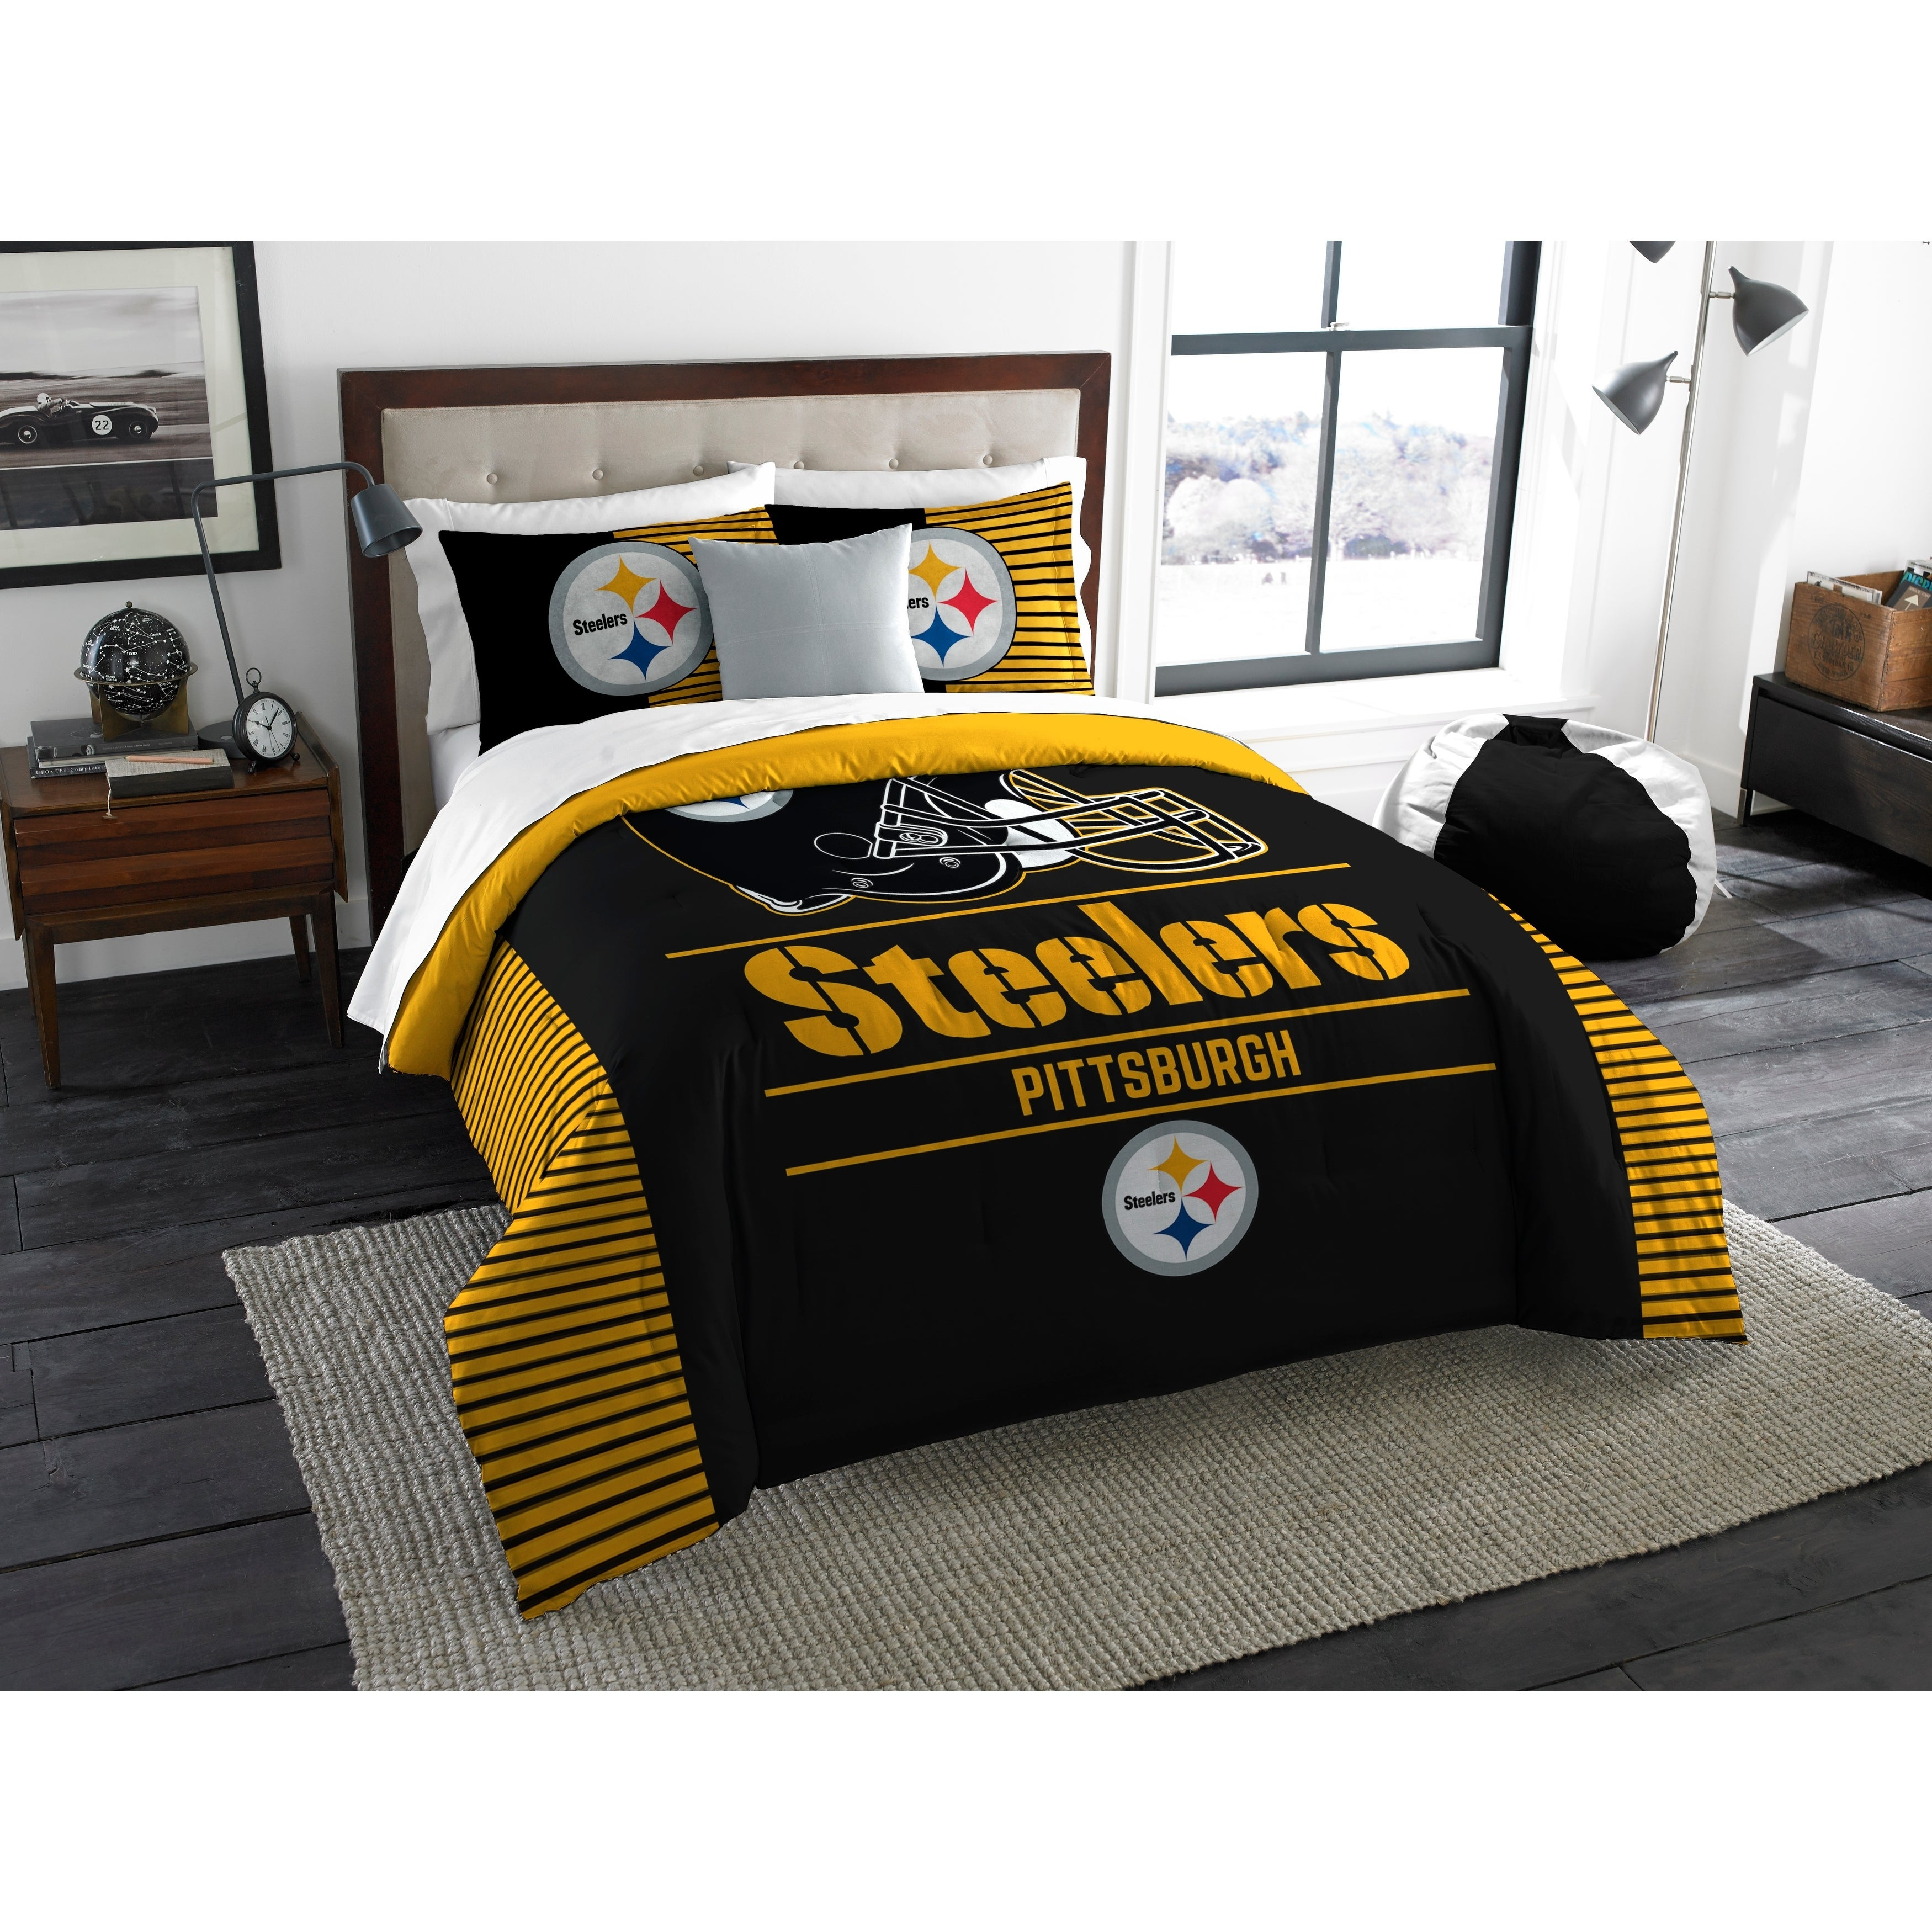 Bedding Set Twin Pittsburgh Steelers Bed In A Bag Polyester Machine Washable